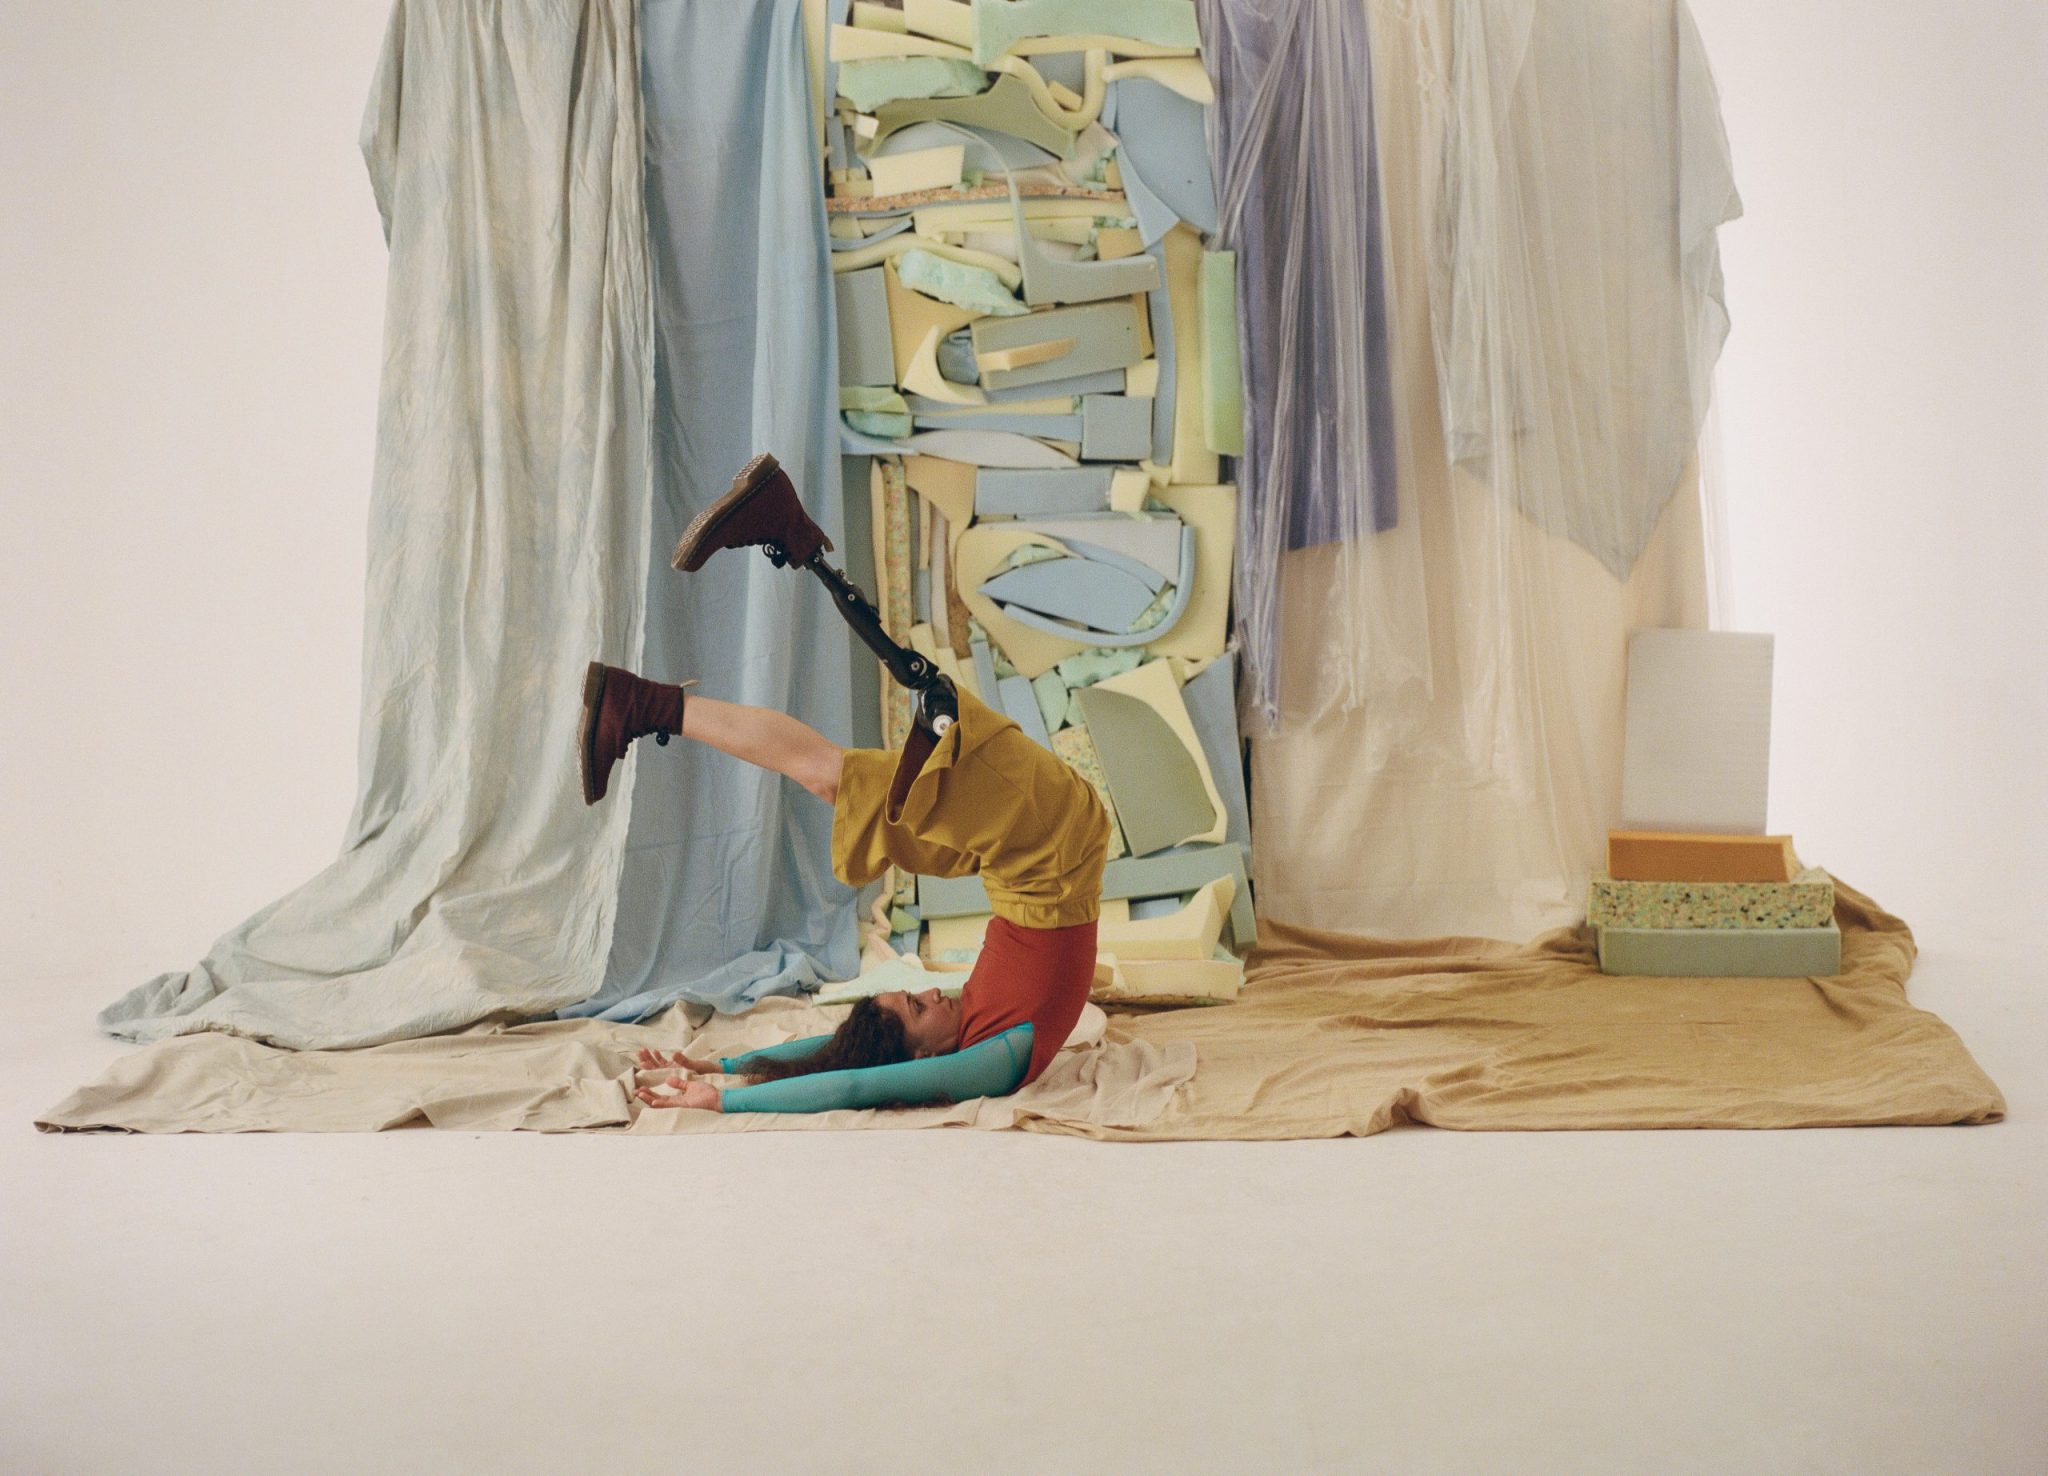 """A still from """"Material Bodies"""". A person on their back raises their legs in the air. They wear a prosthetic leg that is made of black metal. Behind and underneath them is a sculptural backdrop made of draped fabrics and shards of foam in faded colours including beige, purple, blue and green."""